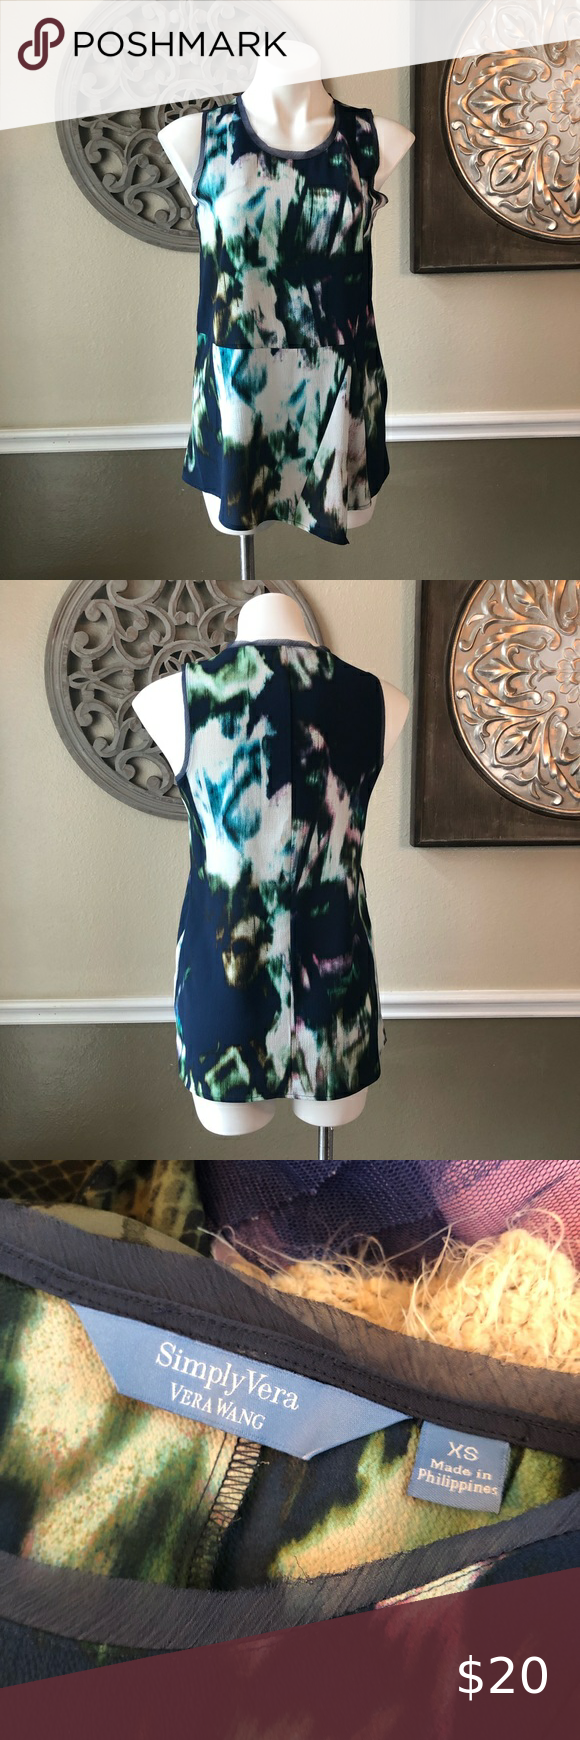 Simply Vera  sleeveless blouse blue print Simply Vera Vera Wang Brand  size XS blue and turquoise with white and green abstract print  sleeveless with sheer raw hem on trim  gently used in great condition no tears or stains measurements laying flat: 17.5 inches pit to pit and 27 inches shoulder to hem    #0383 Simply Vera Vera Wang Tops Blouses